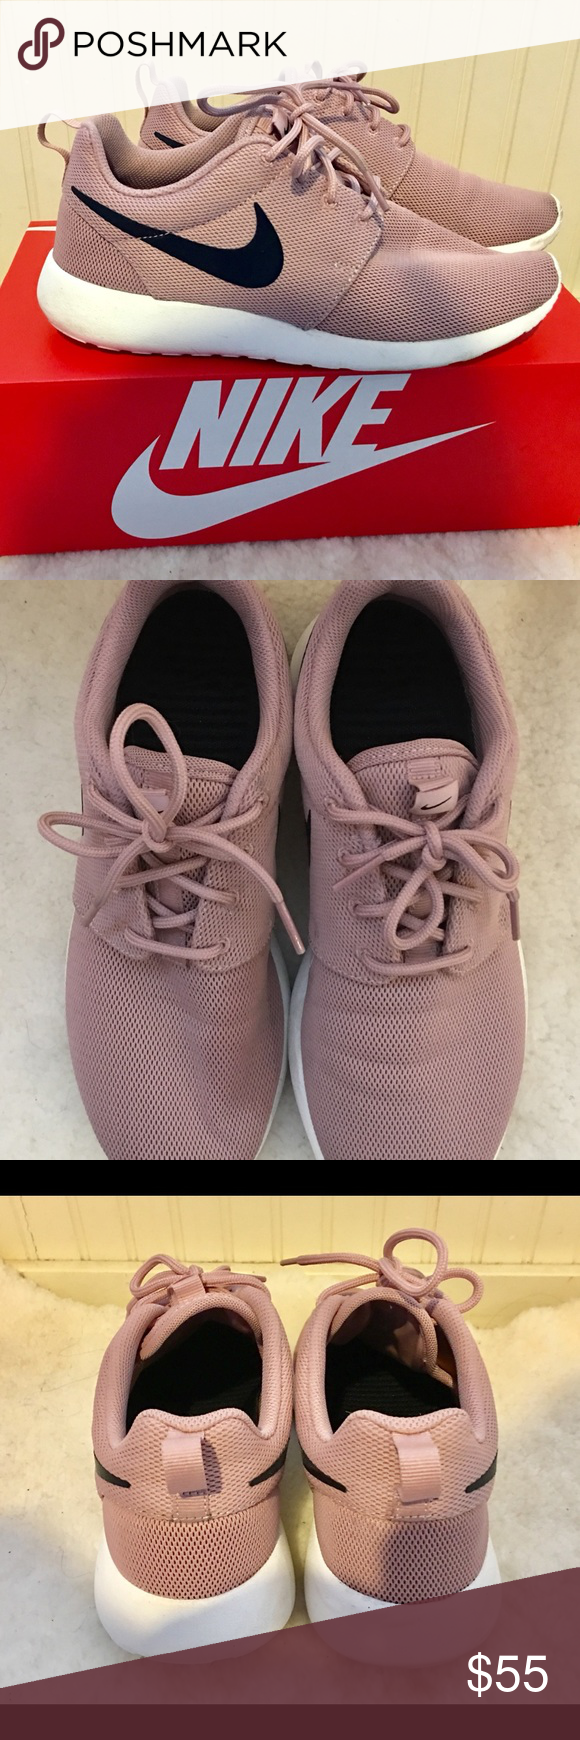 Nike Roshe One shoes particle pink 7.5